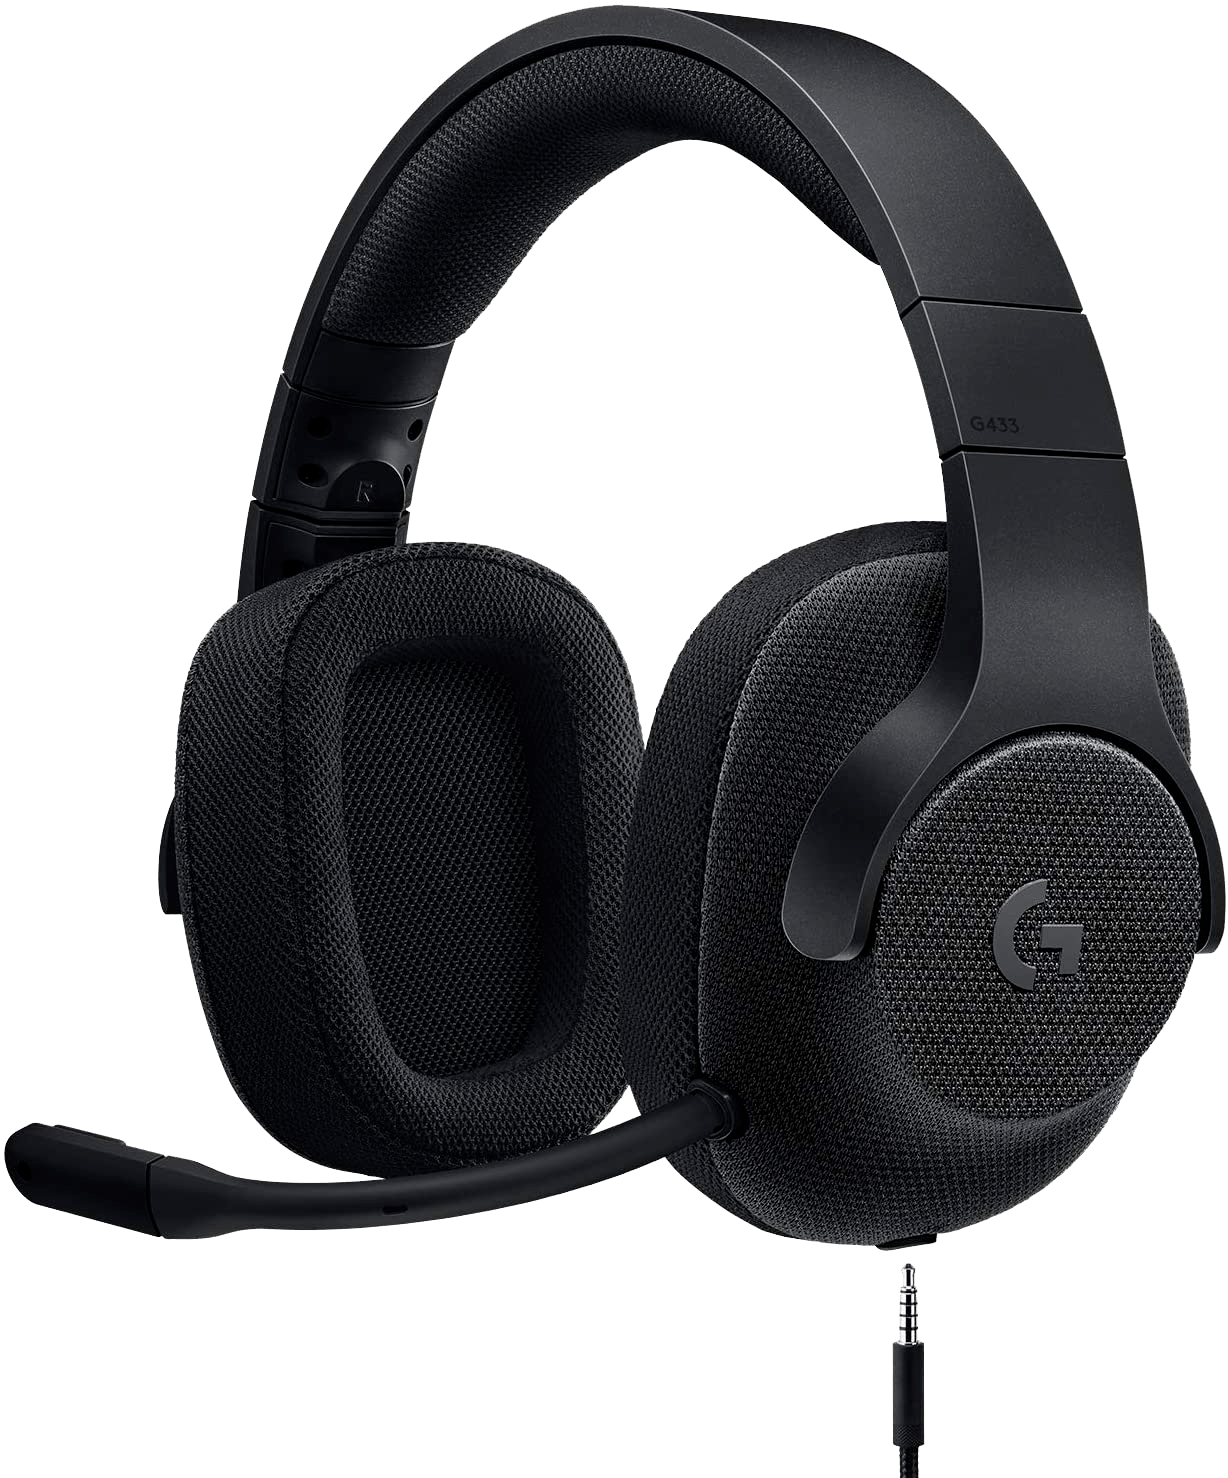 Logitech G433 Gaming Headset